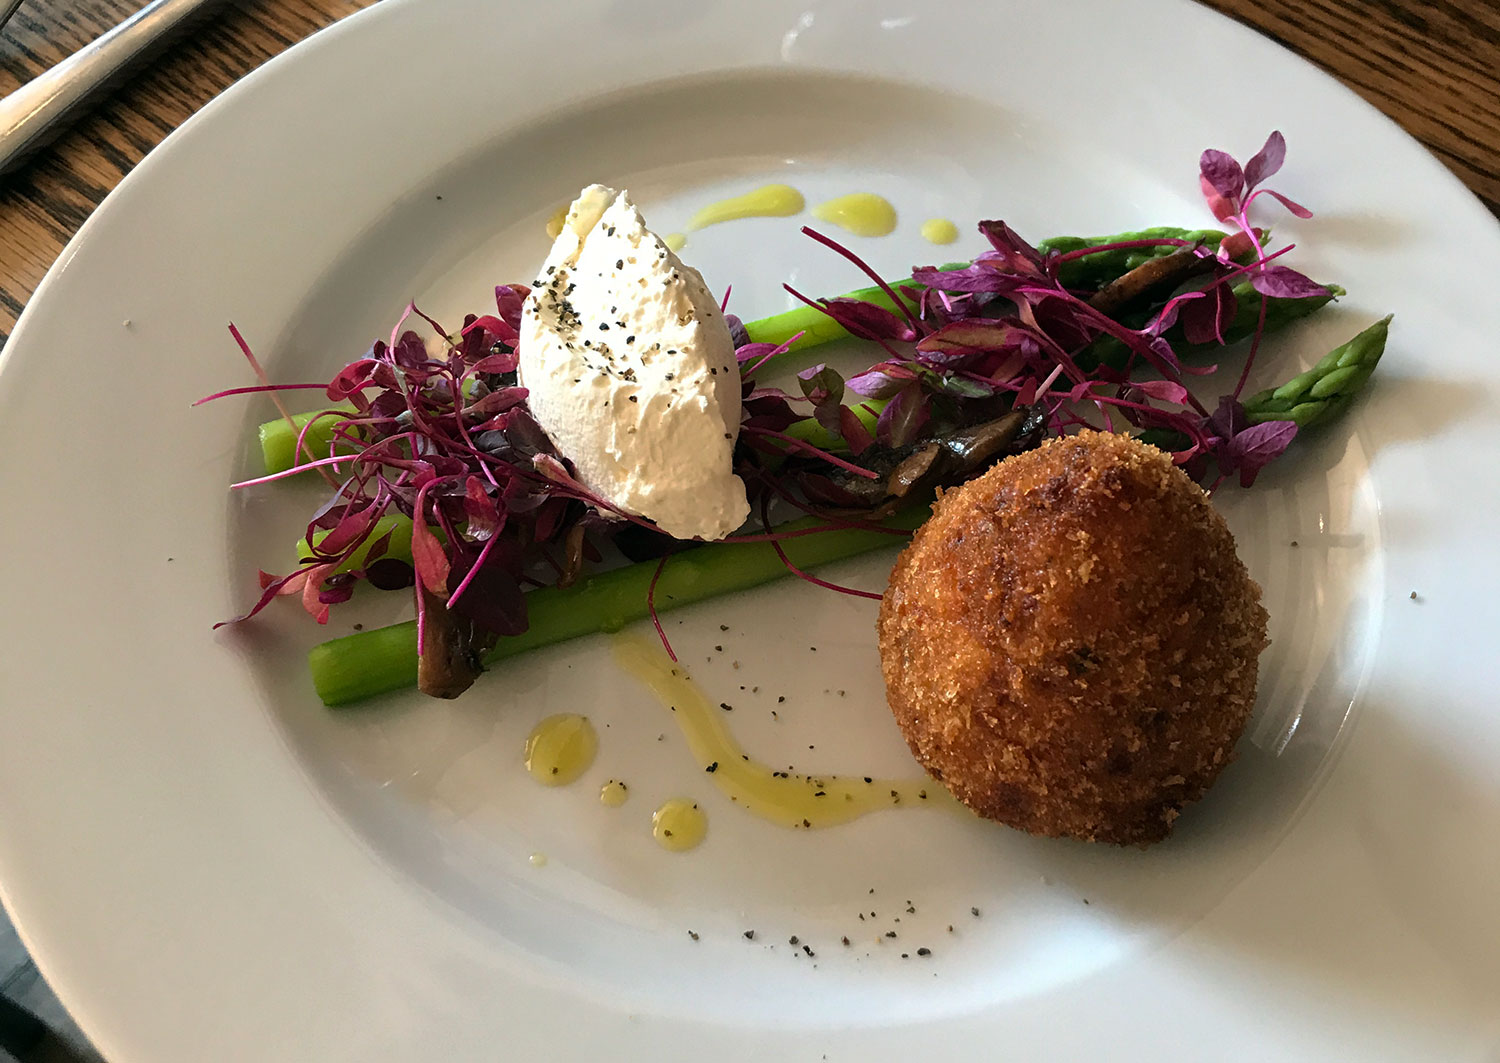 Arancini and asparagus on a plate at Bacaro on Roman Road